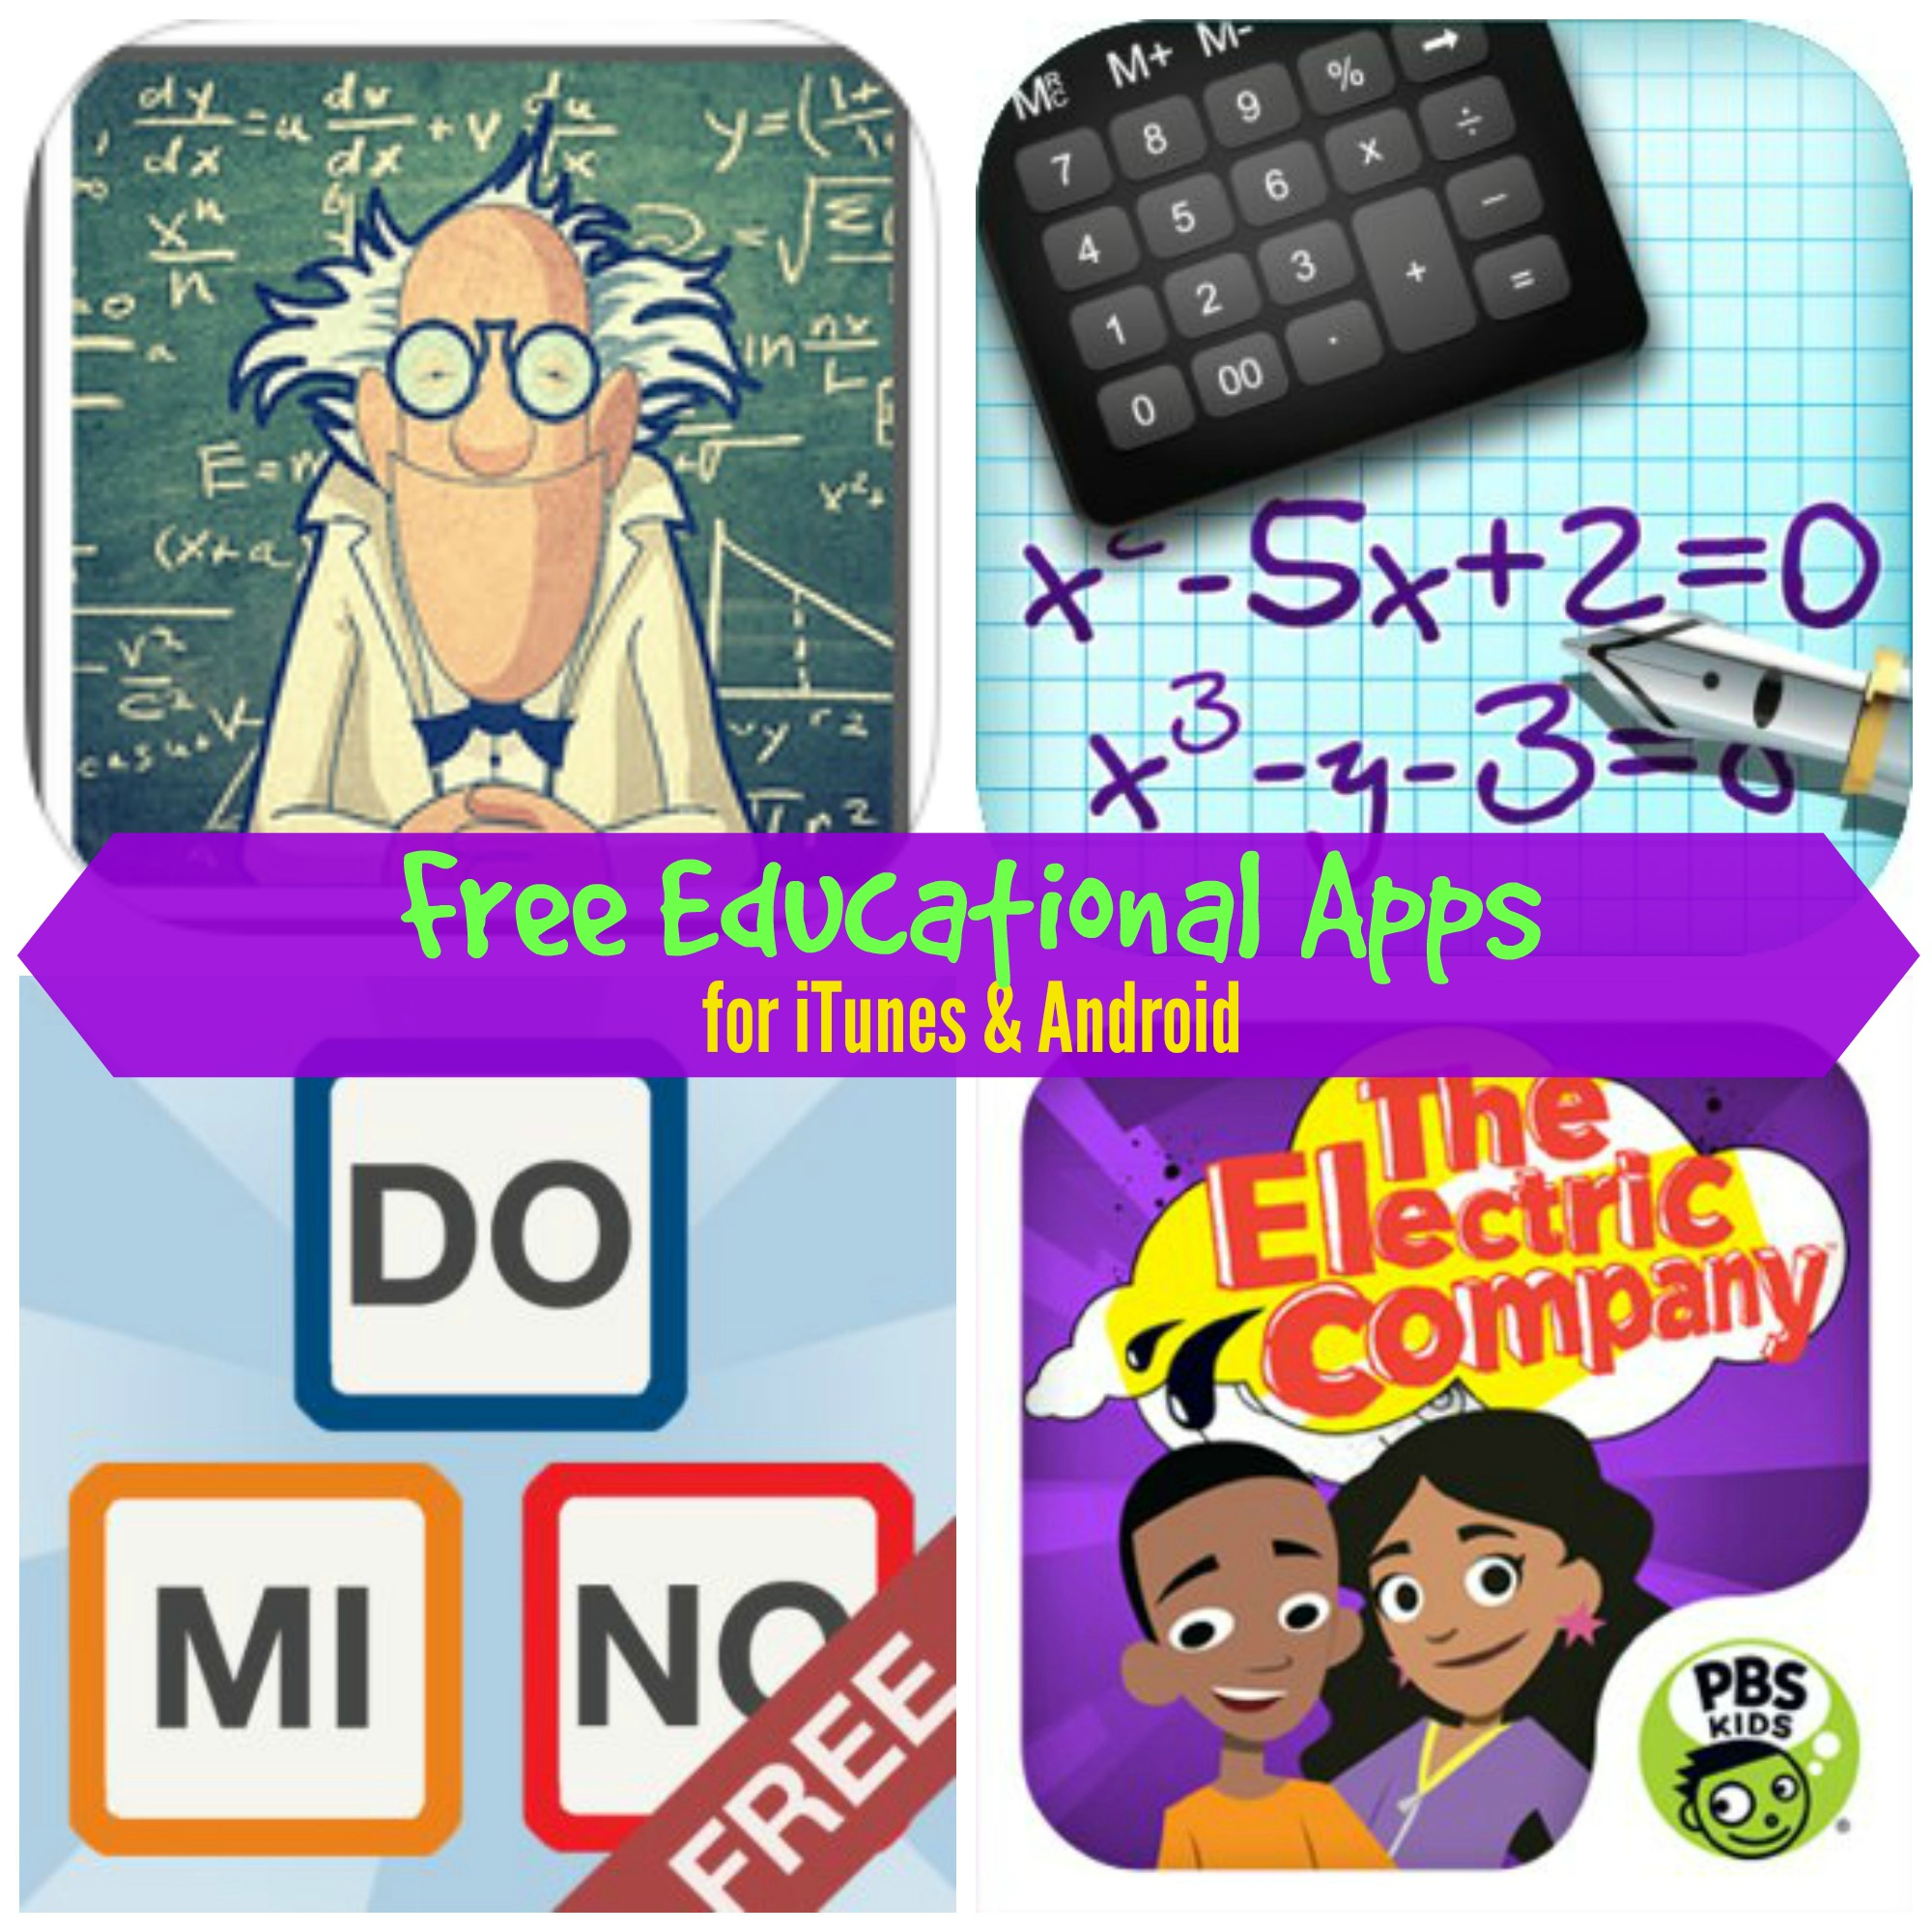 Free Educational Apps for iTunes & Kindle